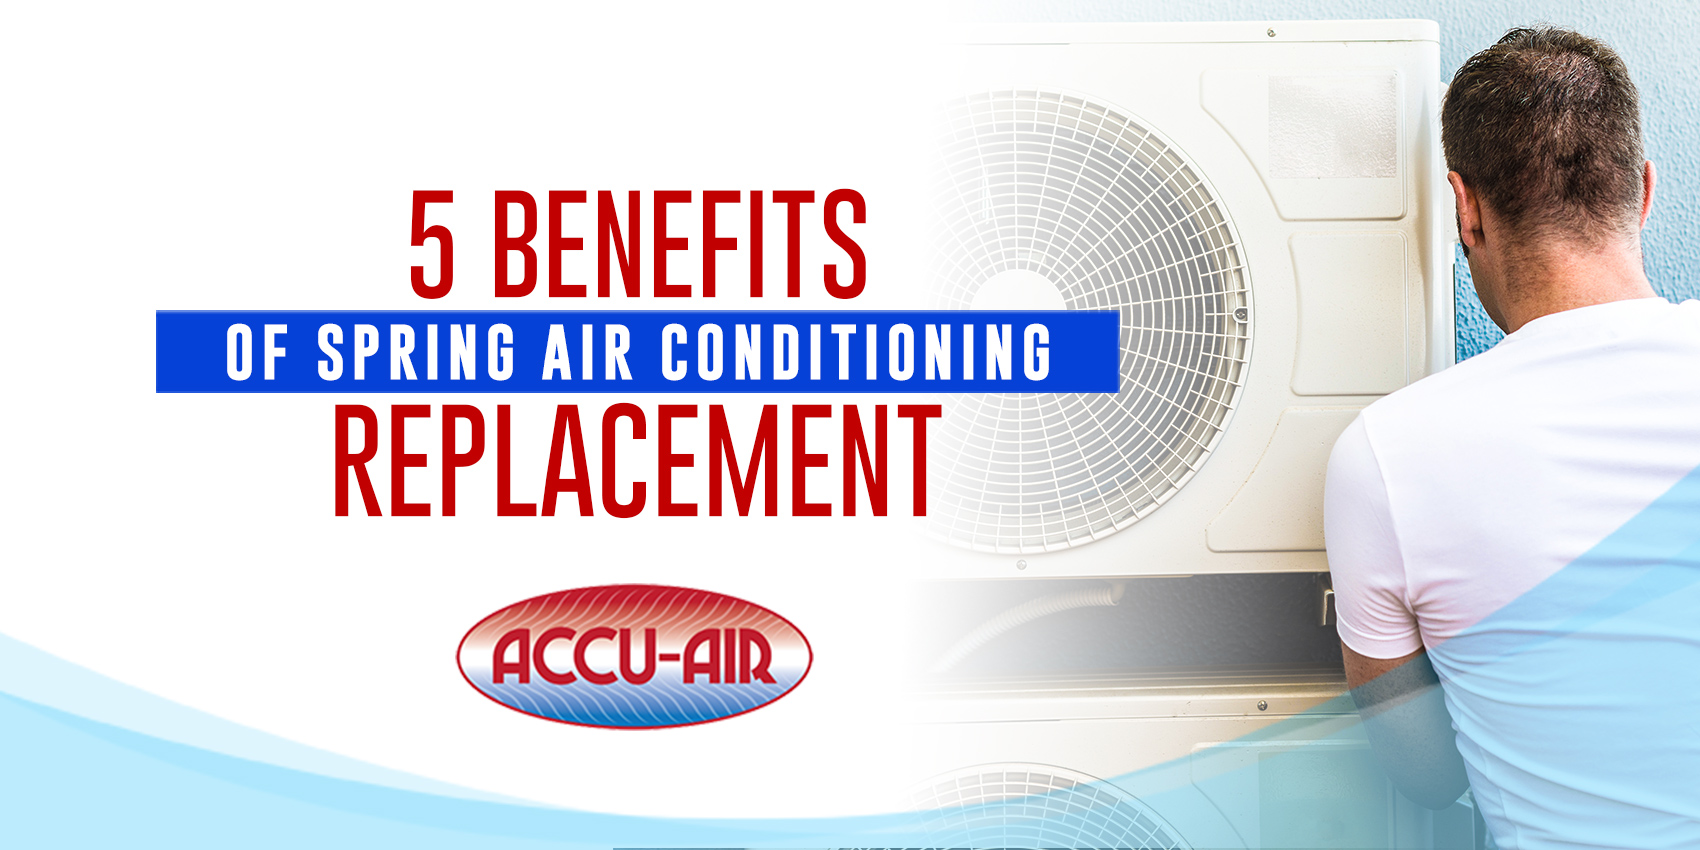 5 Benefits of Spring Air Conditioning Replacement